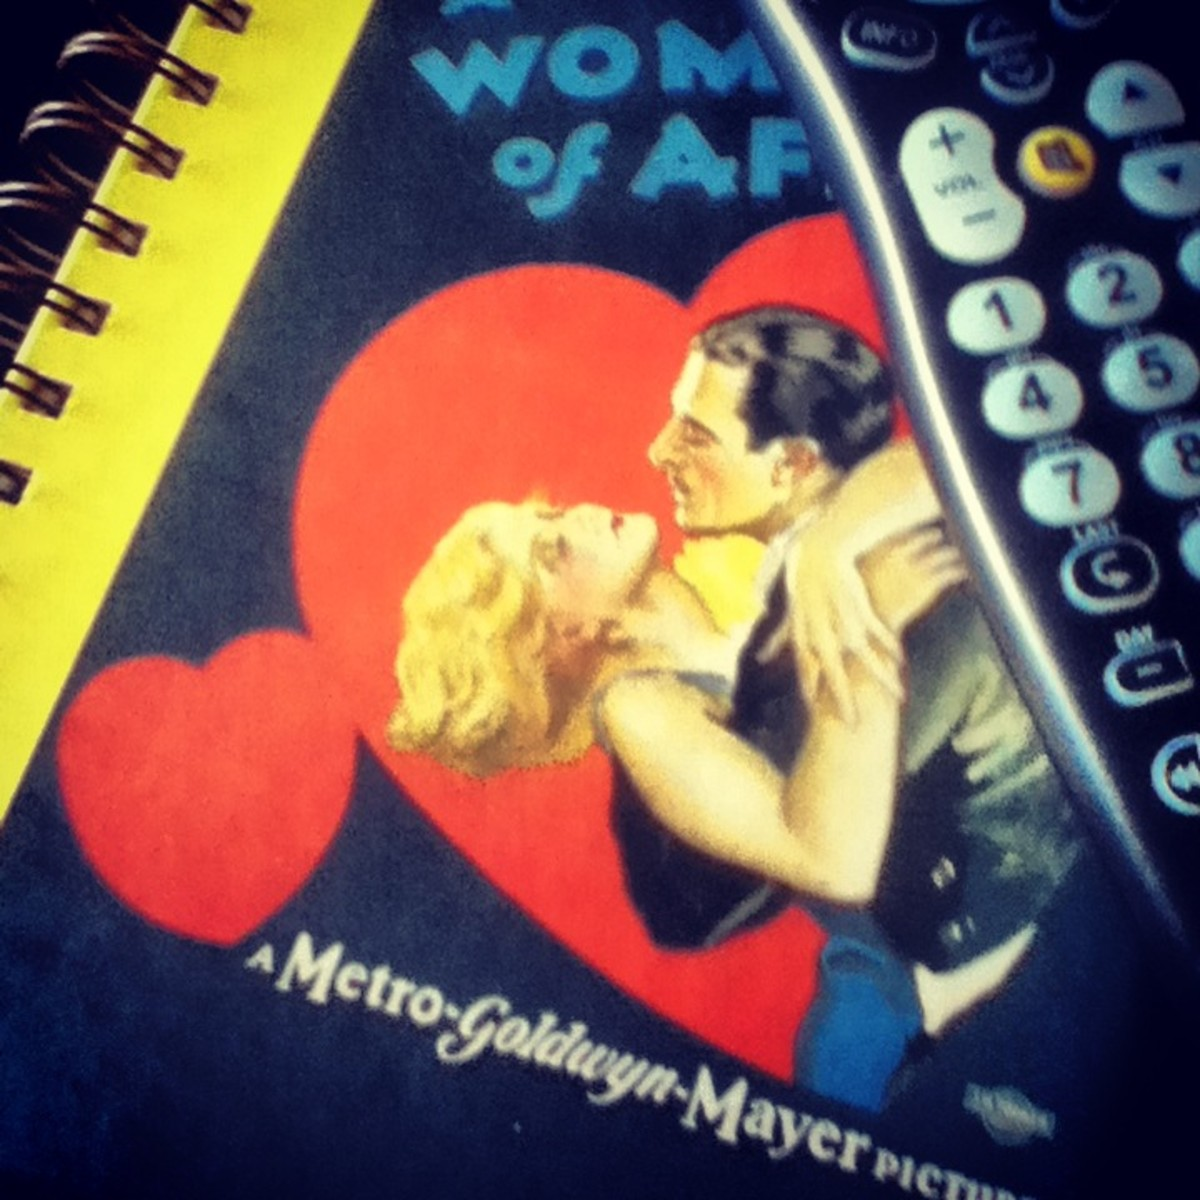 """Keep a notebook of classic movie titles next to the remote control. Next time you can't decide on what to watch, open your journal and find an """"I've been dying-to-watch this"""" movie title!"""